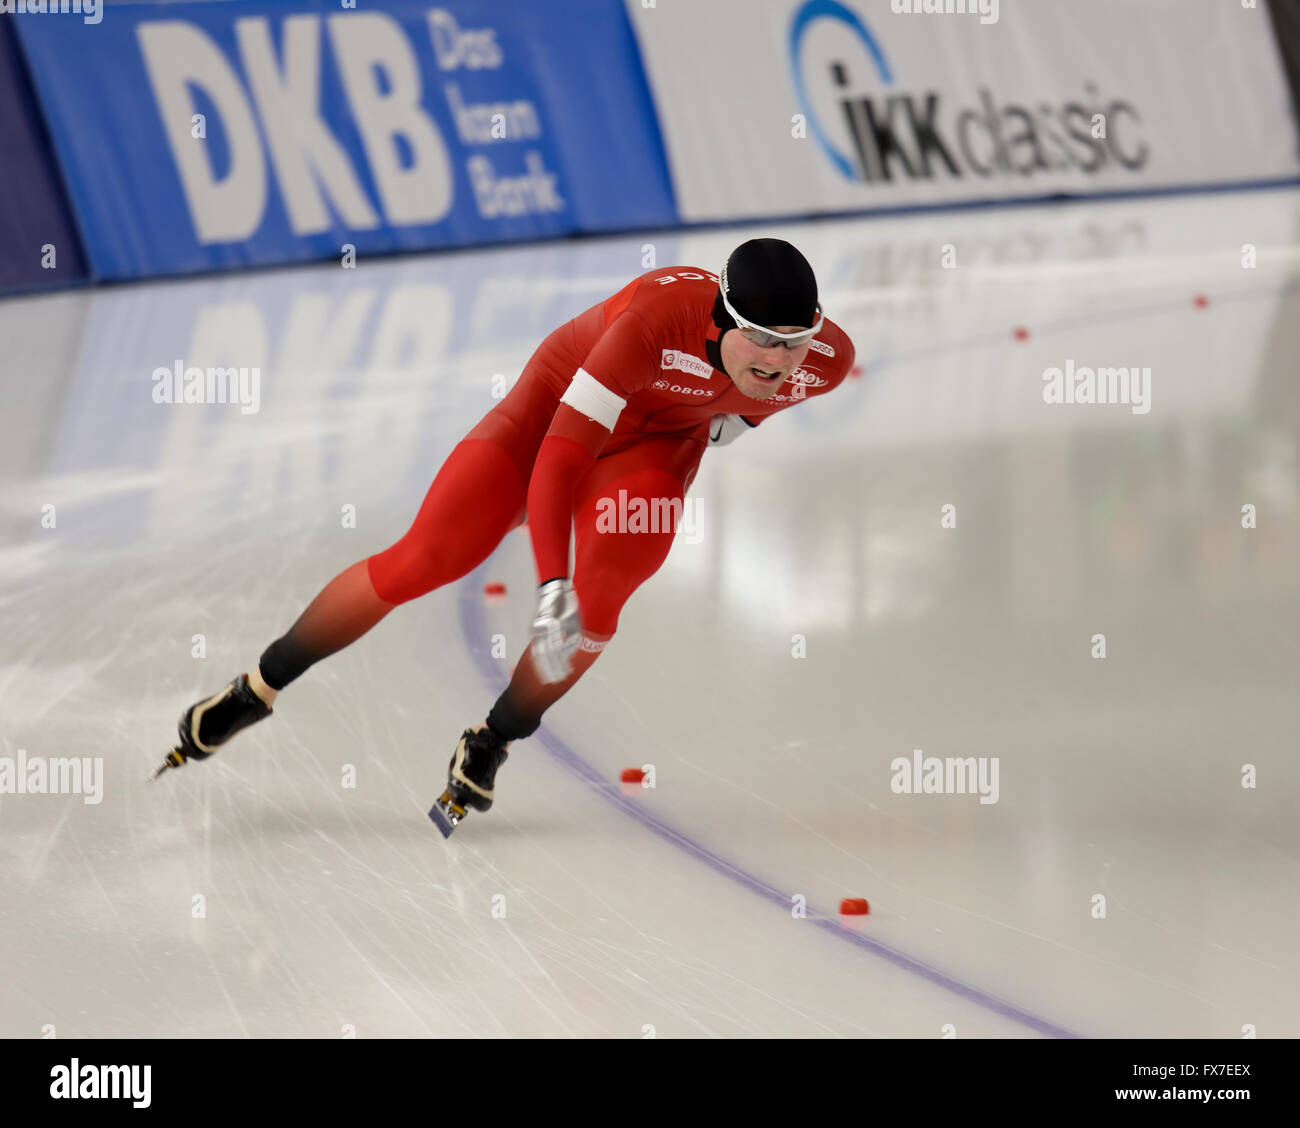 Speed skater at the ISU World All-round Speed Skating Championships, Berlin, Germany, March 2016 - Stock Image